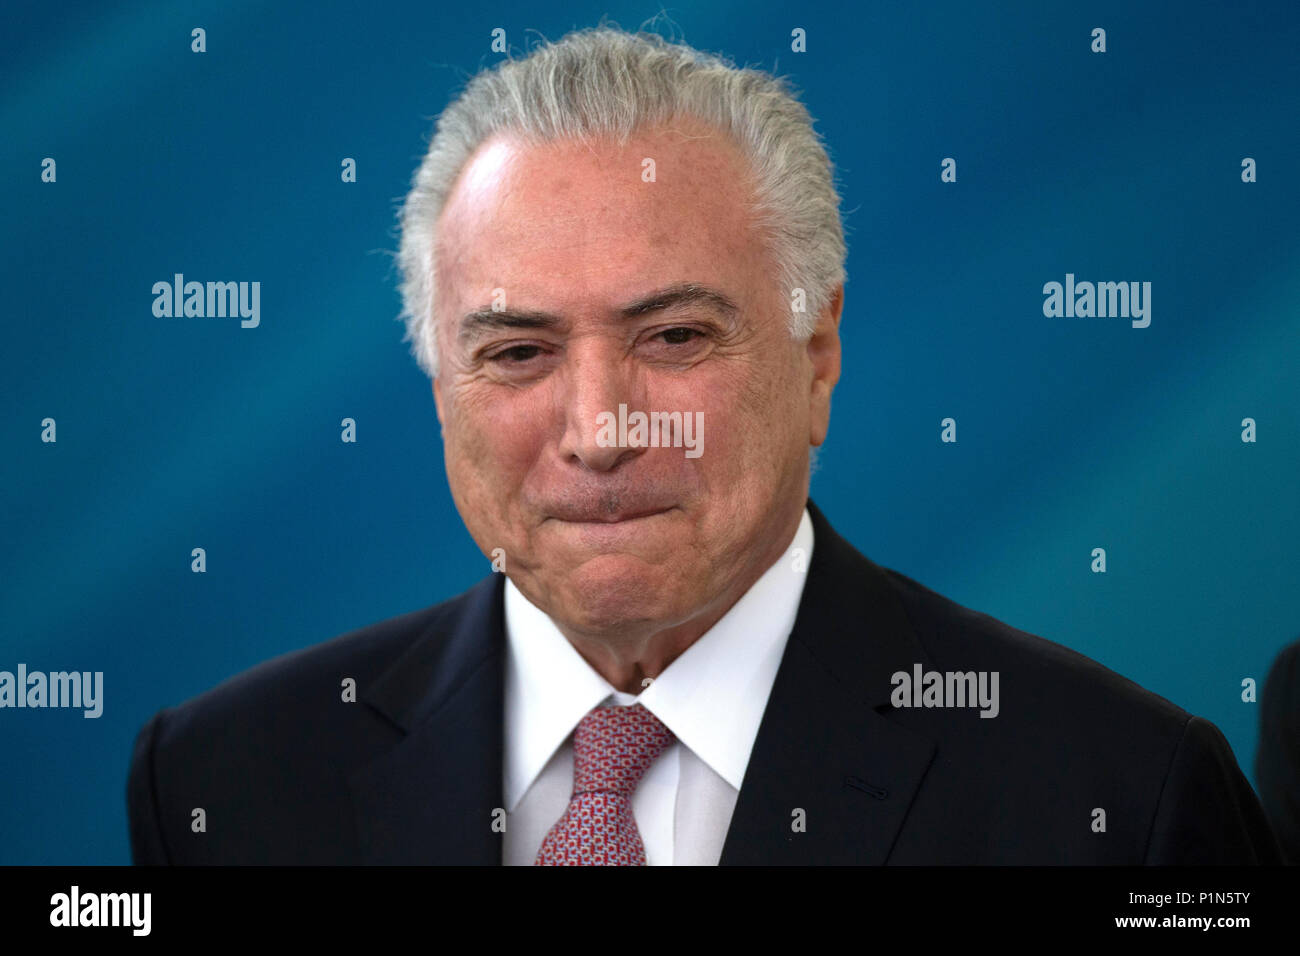 Brasilia, Brazil. 12th June, 2018. Brazilian President Michel Temer takes part in a ceremony to sign decrees in order to regulate the Mining Code and the revenue law for Financial Compensation on the Explotation of Mineral Resources, in Brasilia, Brazil, 12 June 2018. Temer imposed new rules for the mining activity which include the increase of the environmental responsibility of the companies that operate in the sector. Credit: Joedson Alves/EFE/Alamy Live News - Stock Image